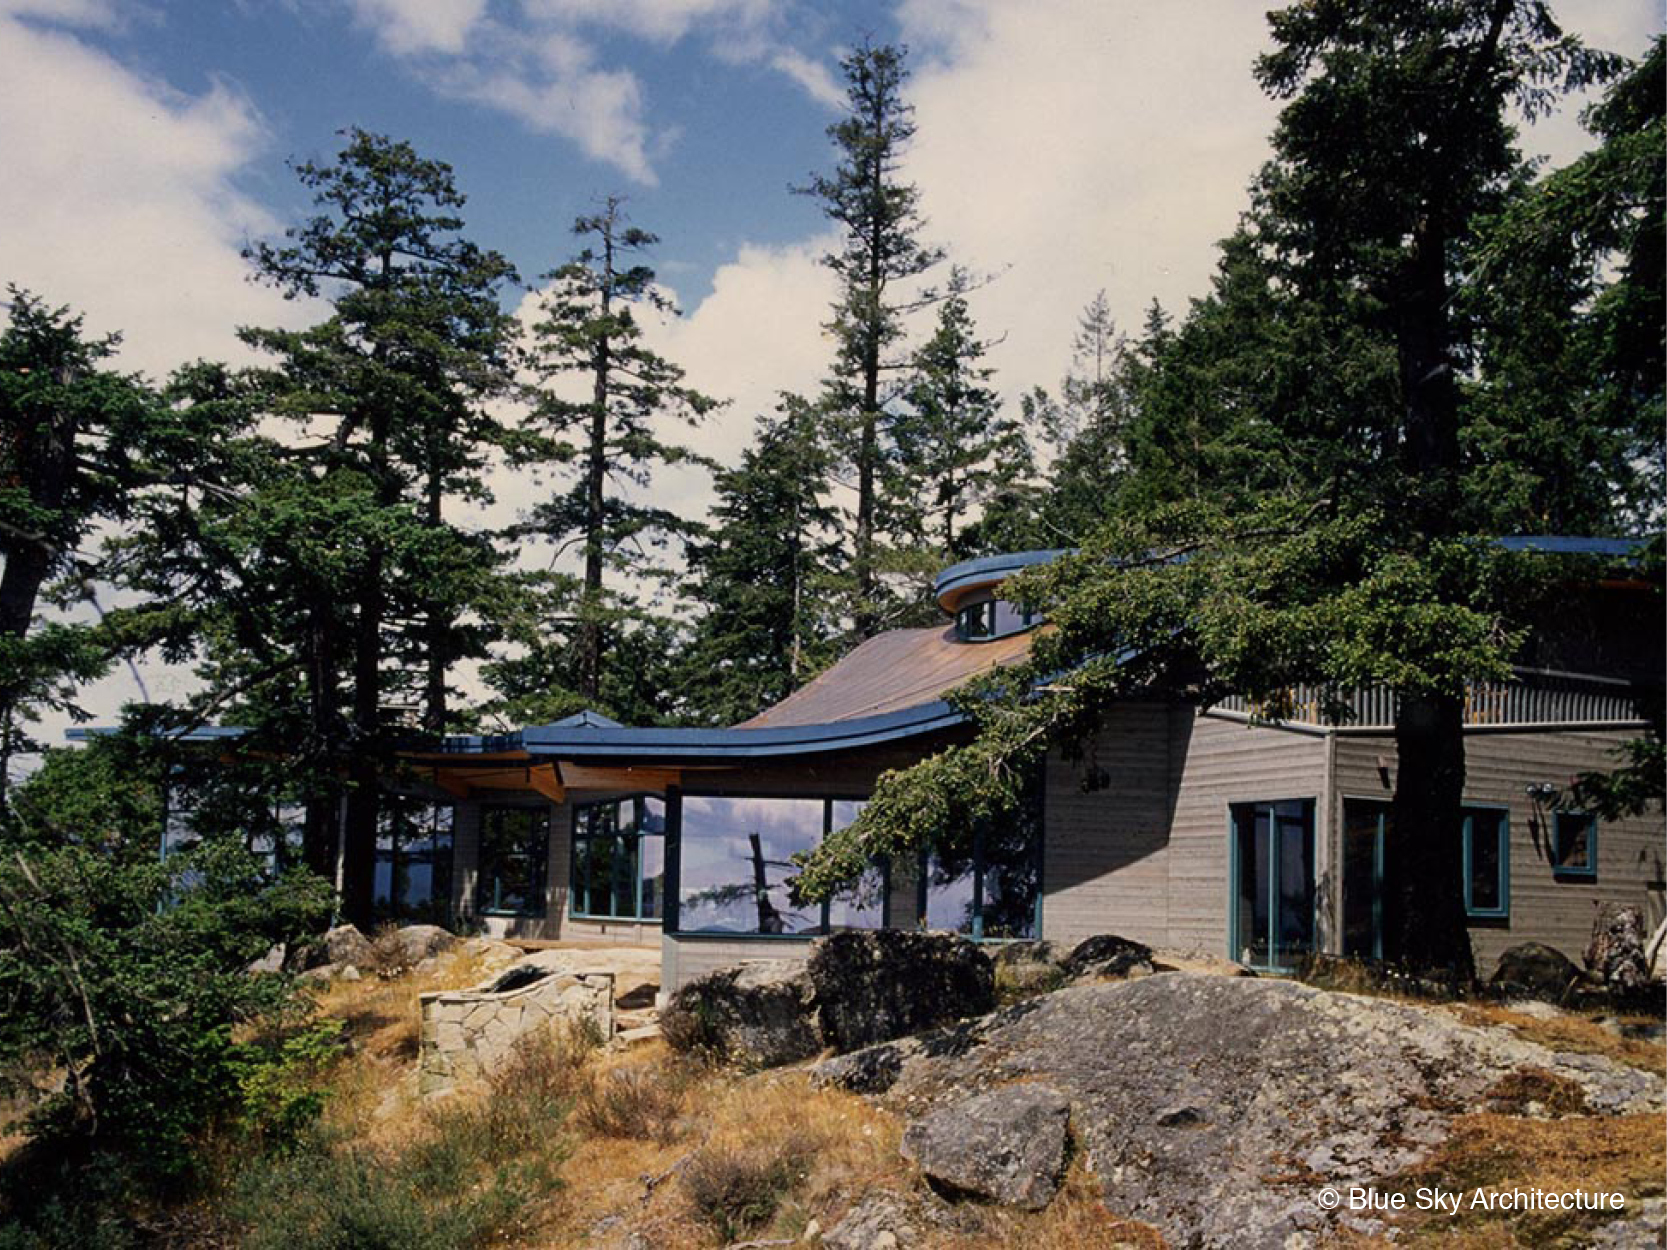 Island Architecture with Dynamic Roofline